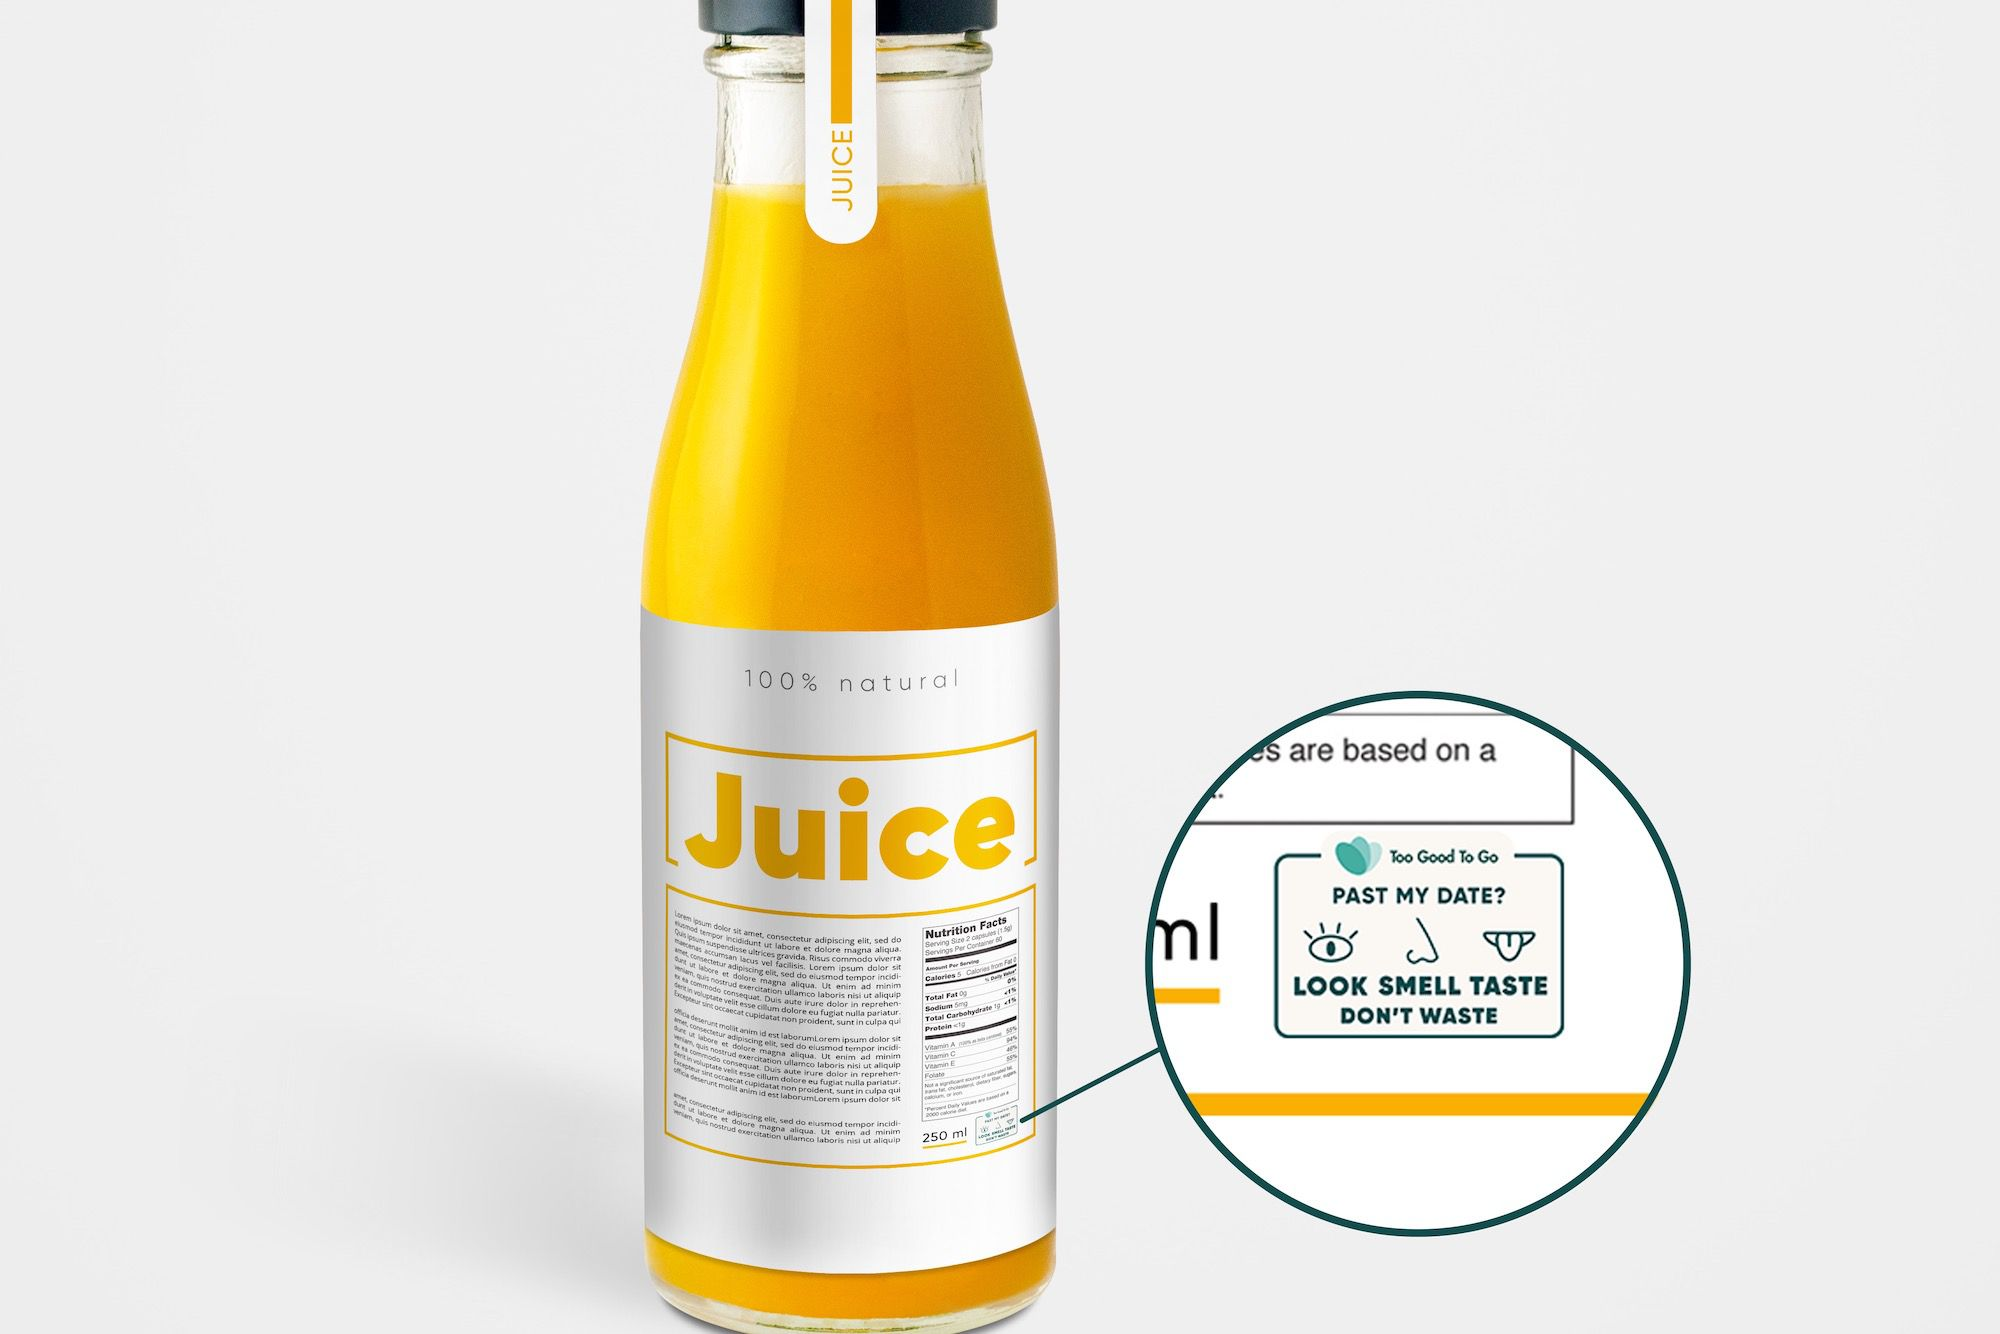 juice bottle with anti-food waste label